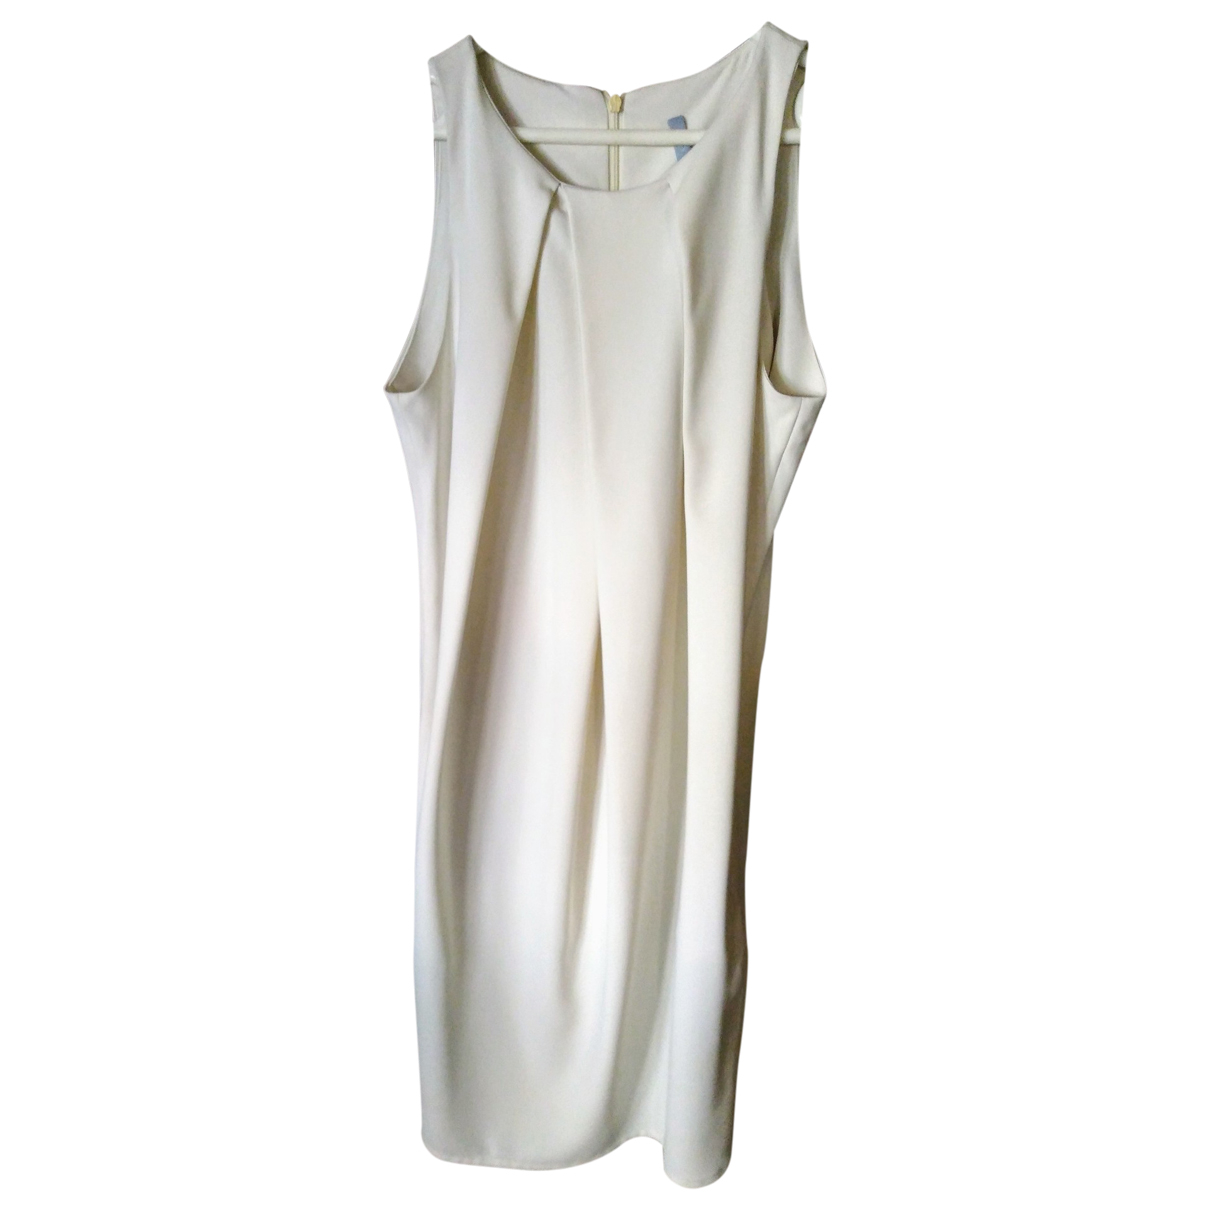 Faycal Amor \N Kleid in  Weiss Polyester